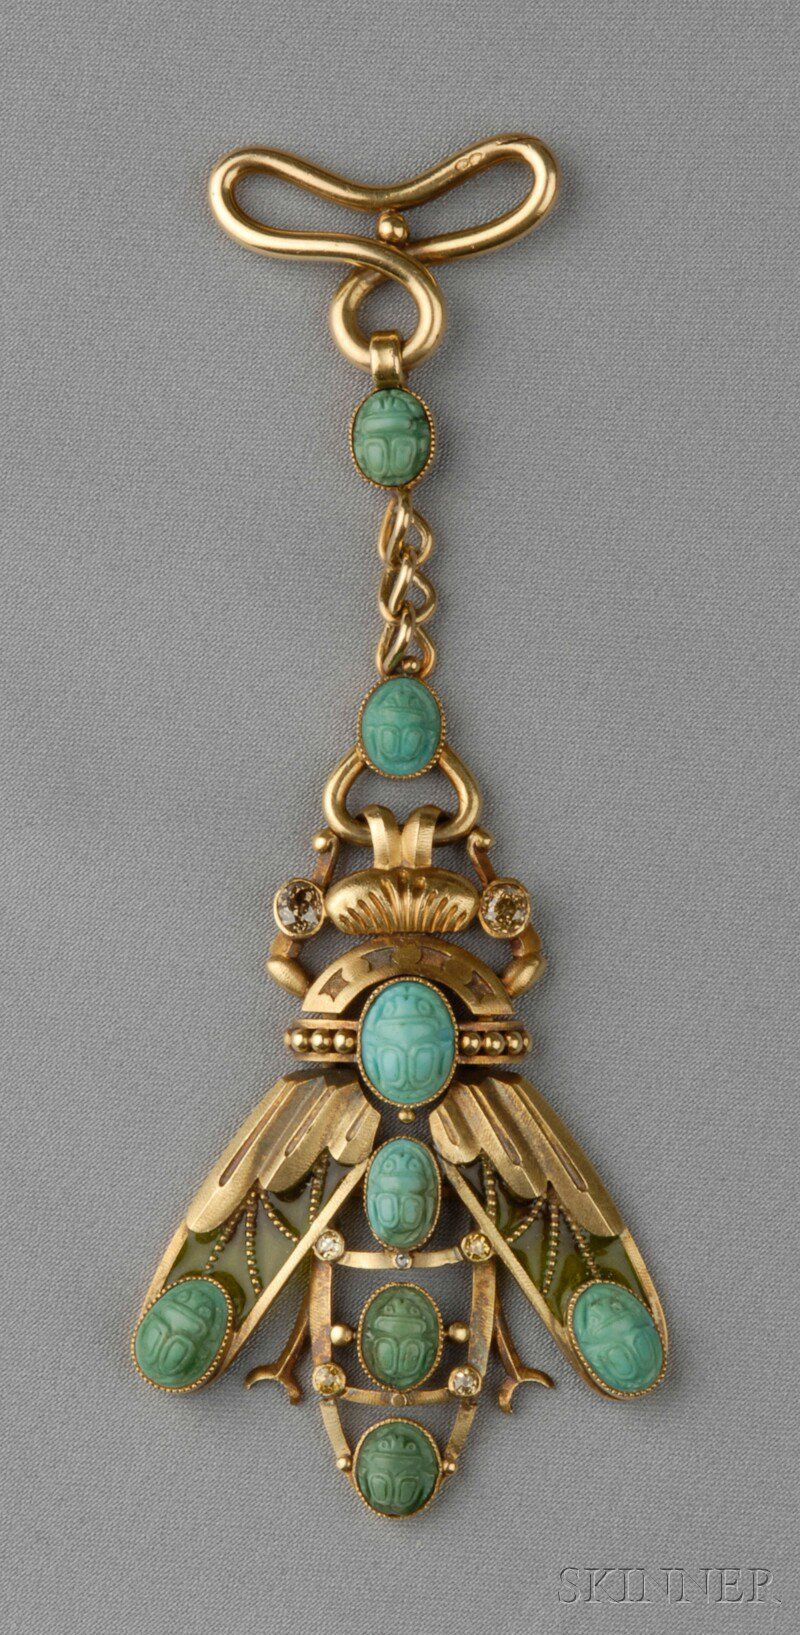 Art Nouveau 18kt Gold, Plique-a-jour Enamel, Turquoise, and Colored Diamond Fob, designed as a scarab with plique-a-jour enamel wings and carved turquoise scarabs, old European and old single-cut diamond accents, lg. 4 1/4 in., French import stamps.  (hva)